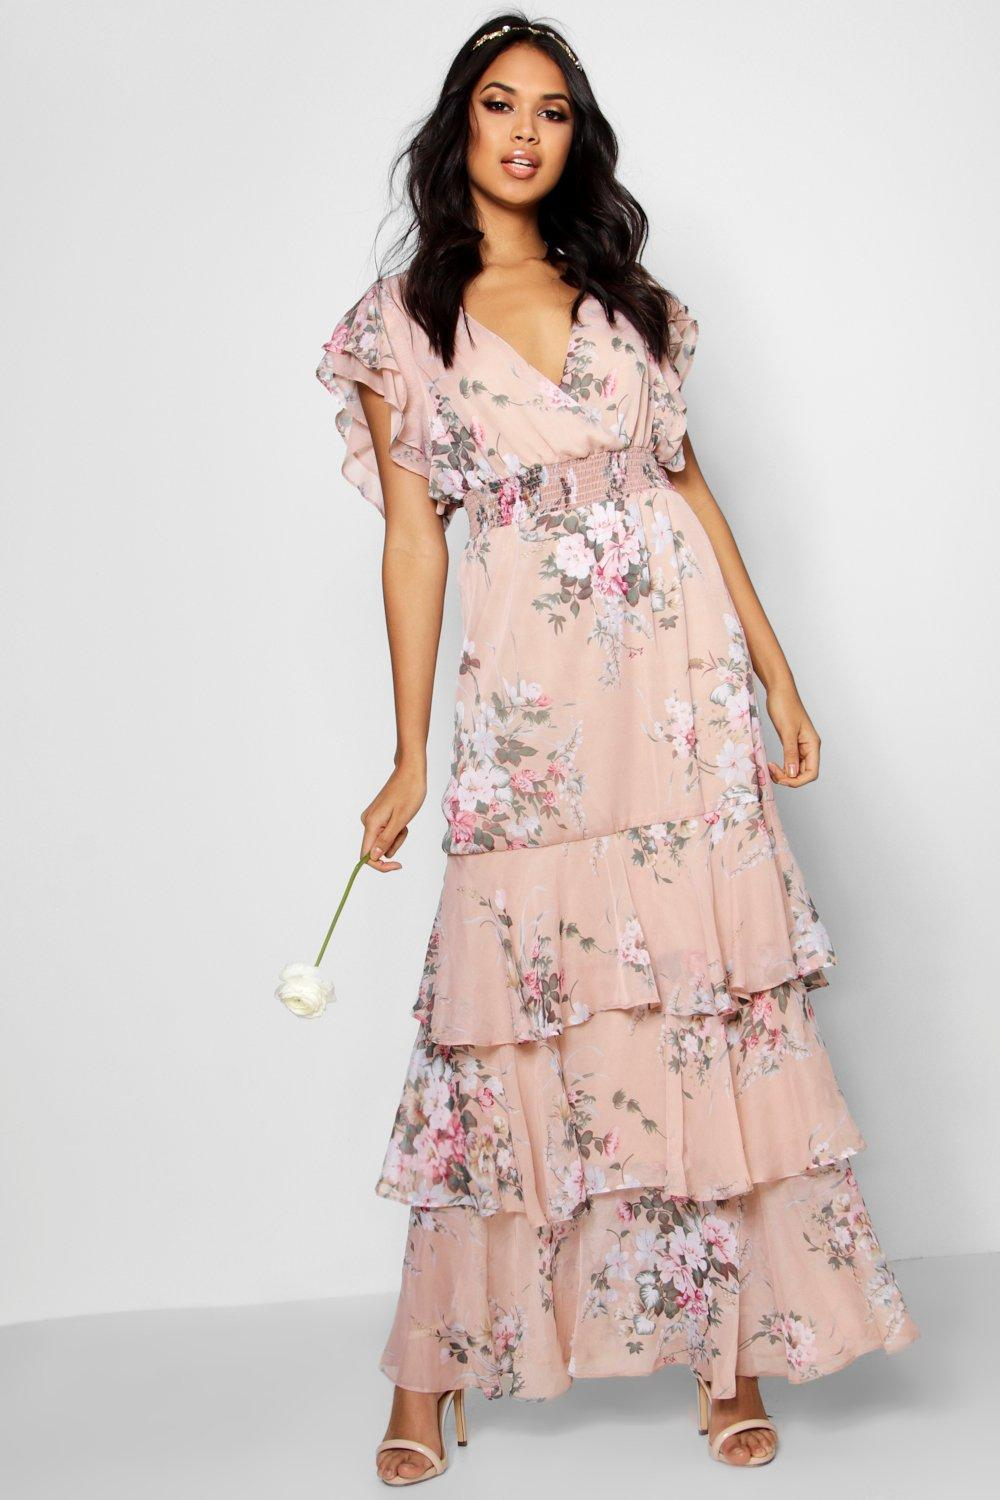 Boohoo Boutique Vintage Floral Ruffle Maxi Dress in Pink - Lyst